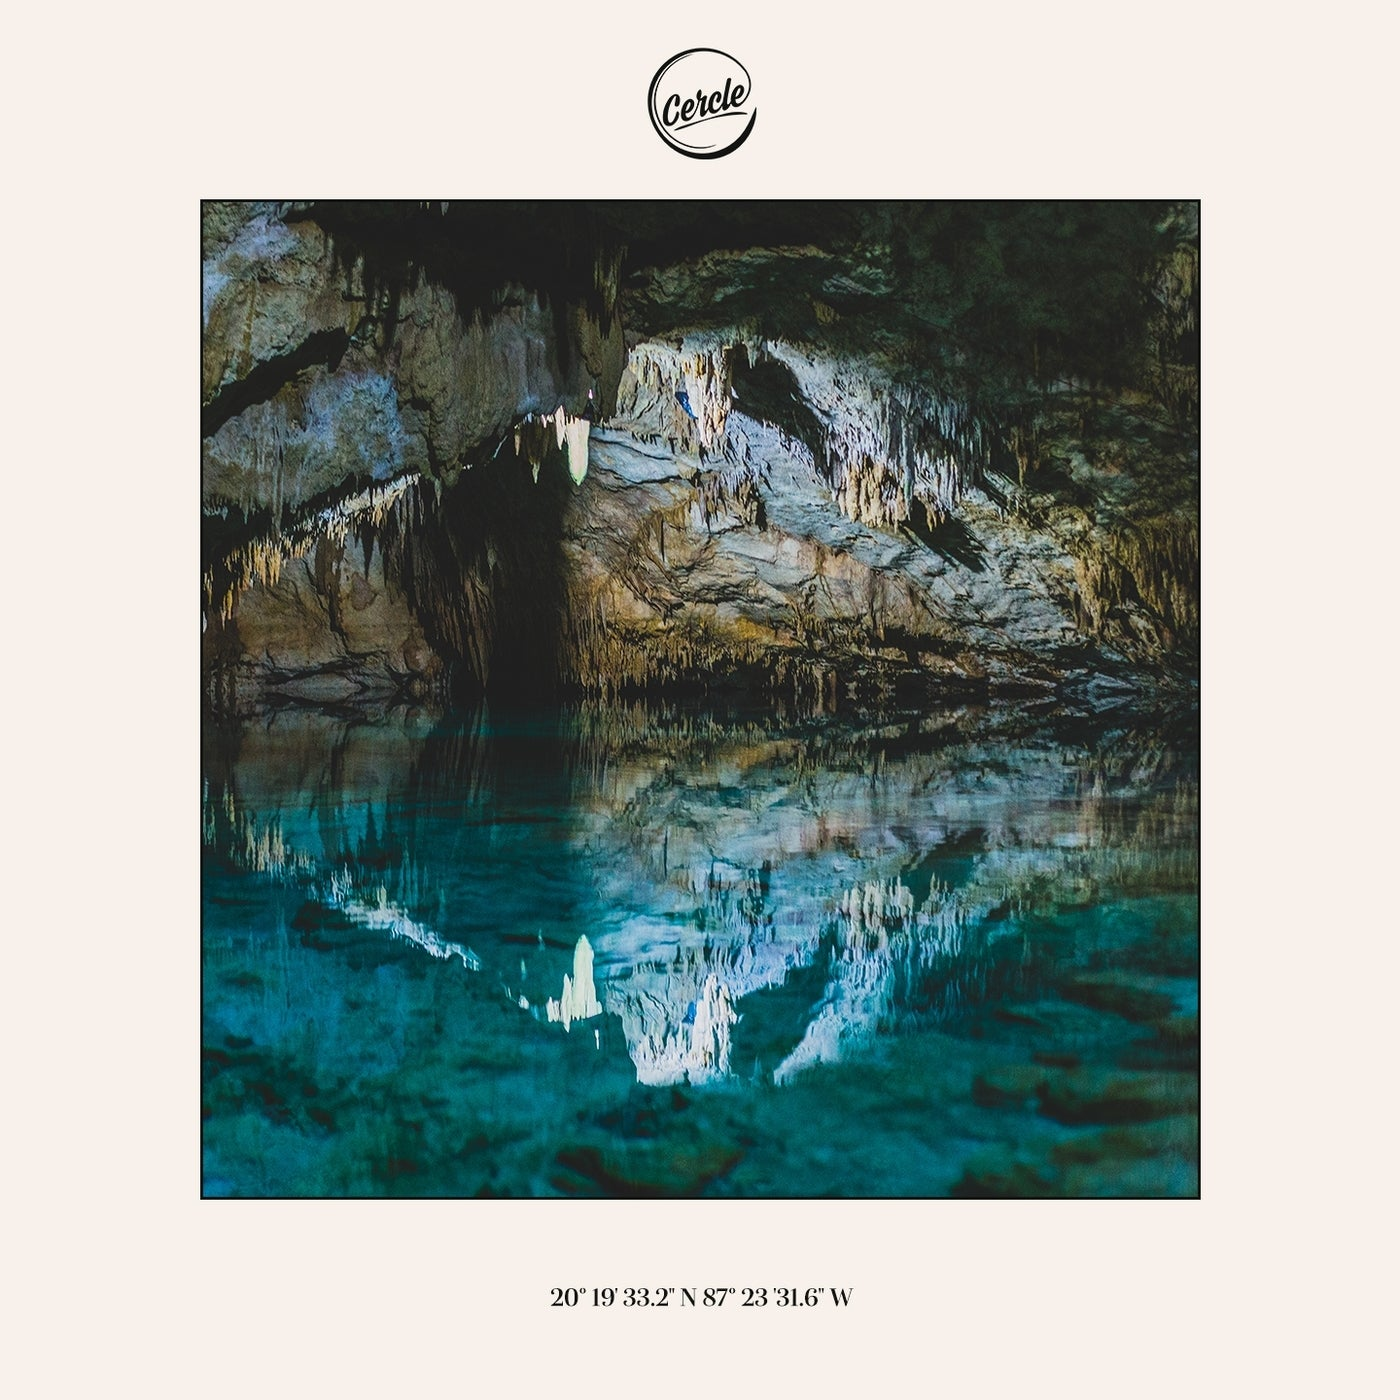 Download Cenote on Electrobuzz